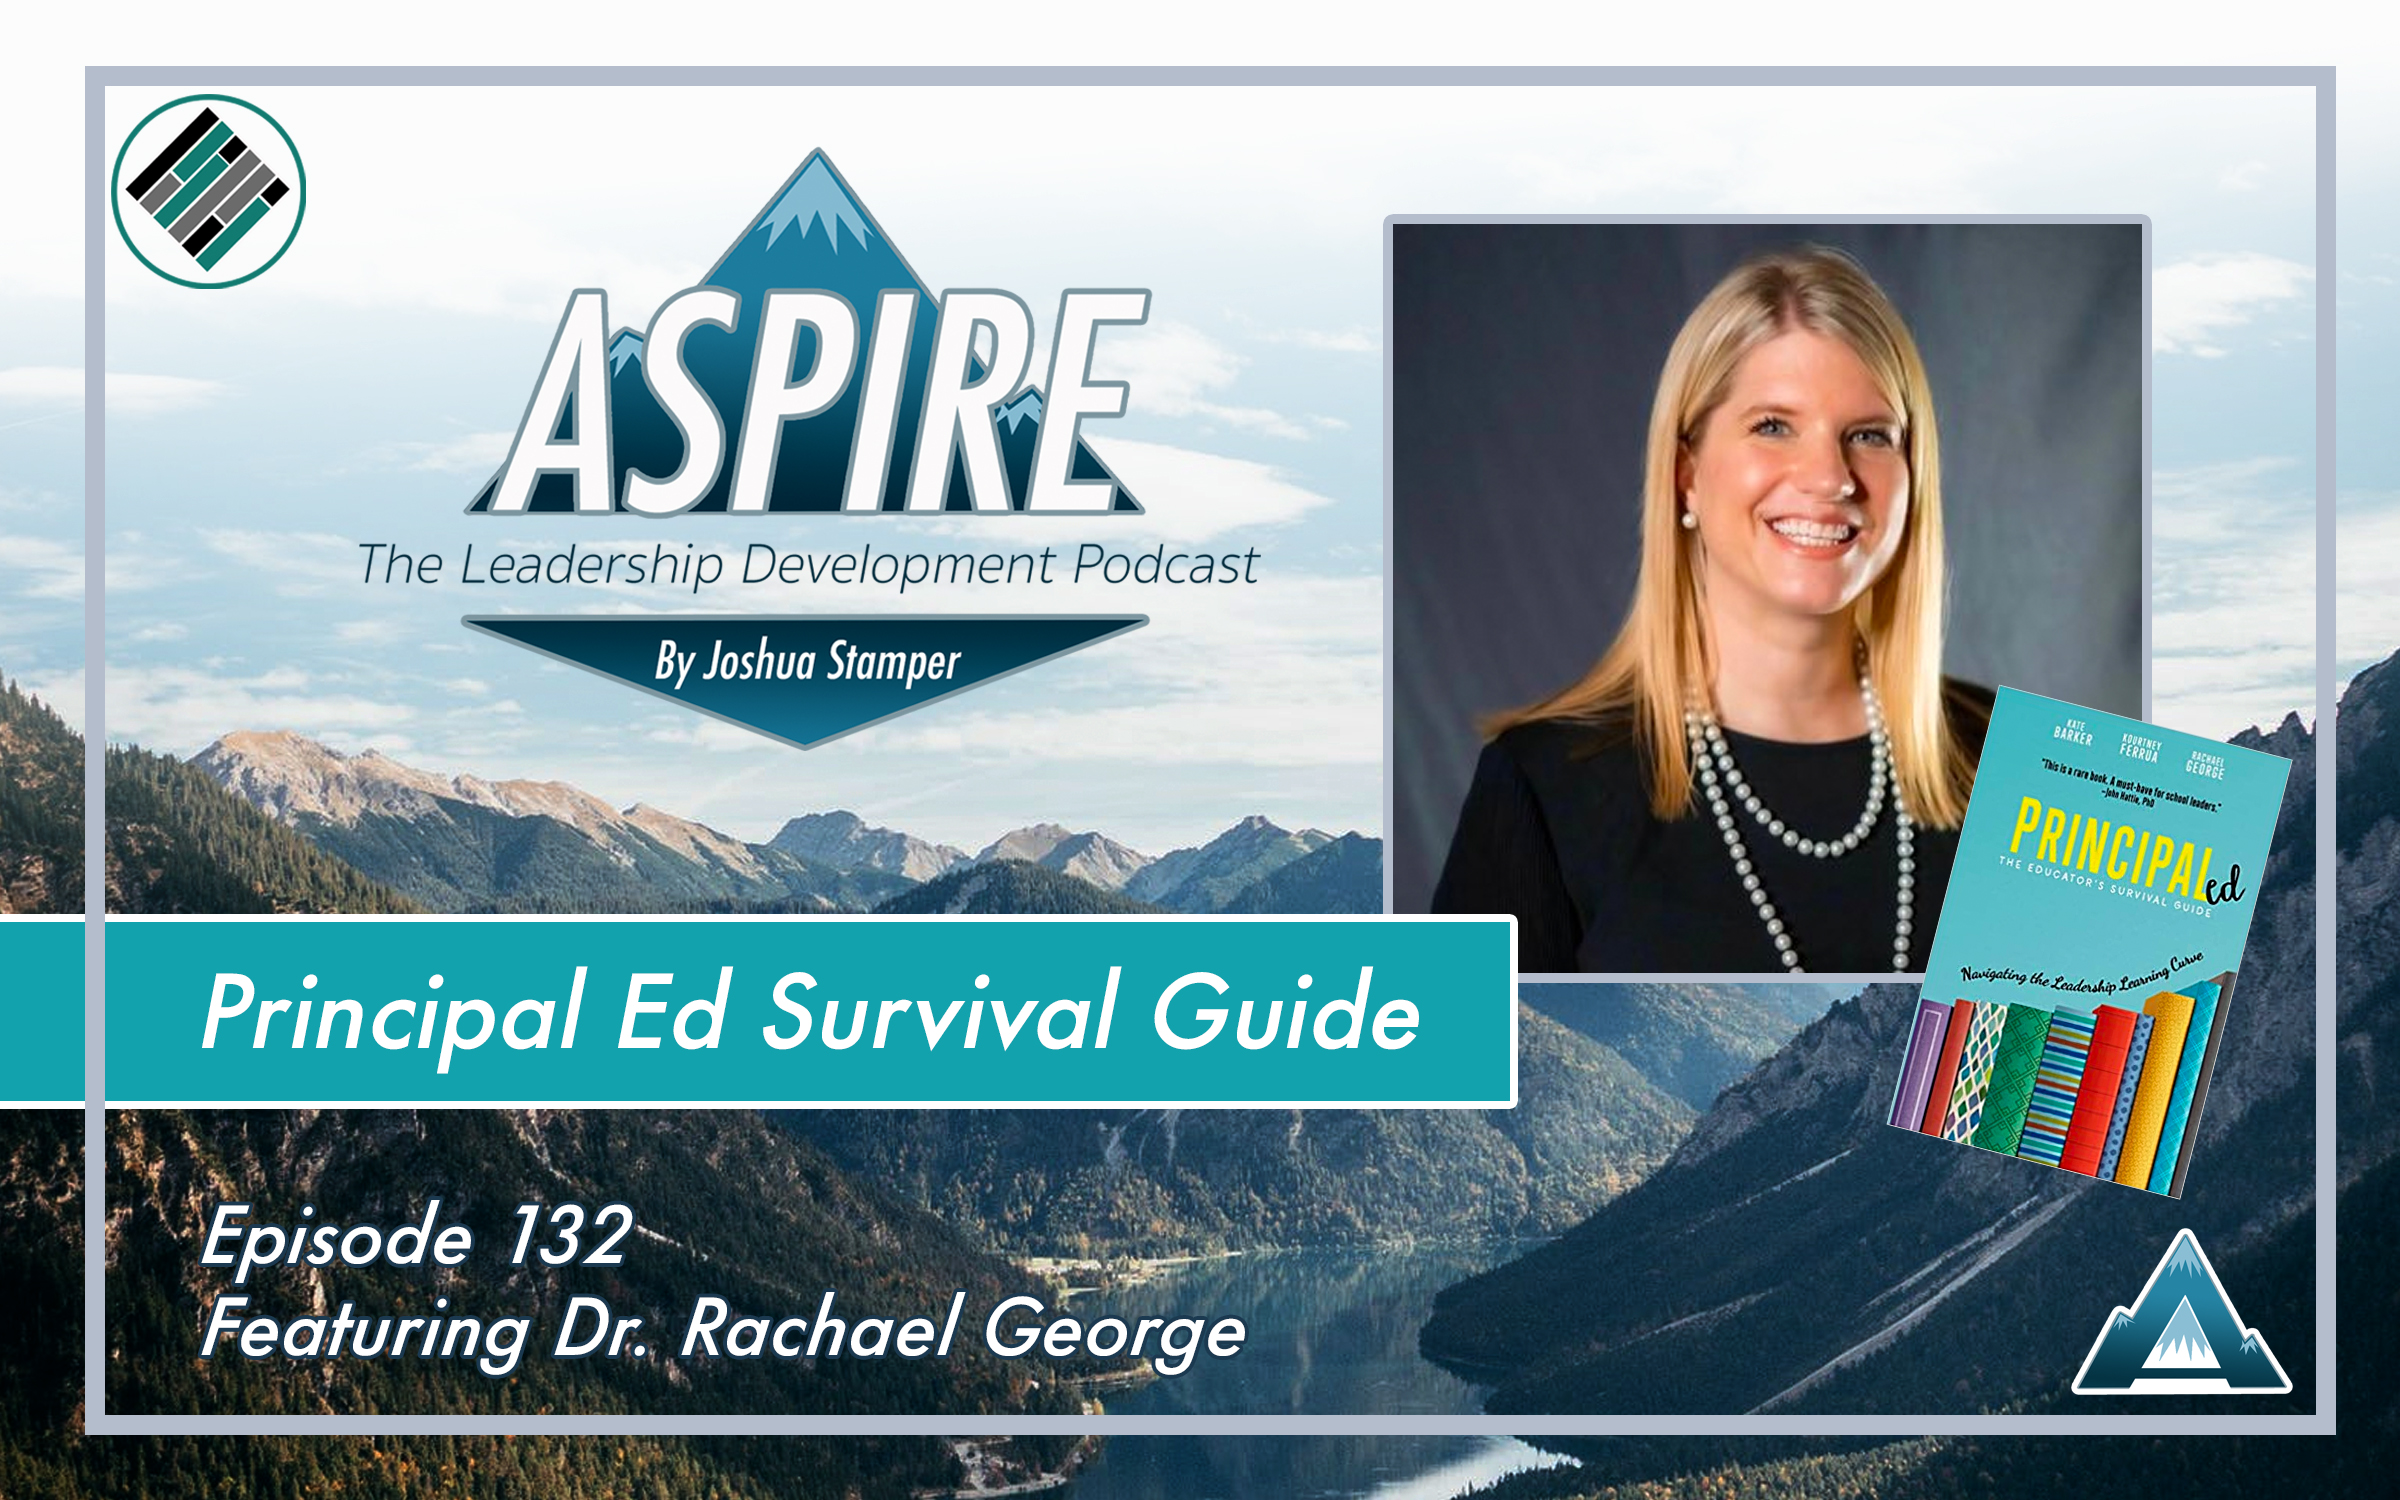 Joshua Stamper, Rachael George, Aspire: The Leadership Development Podcast, #AspireLead, PrincipalED